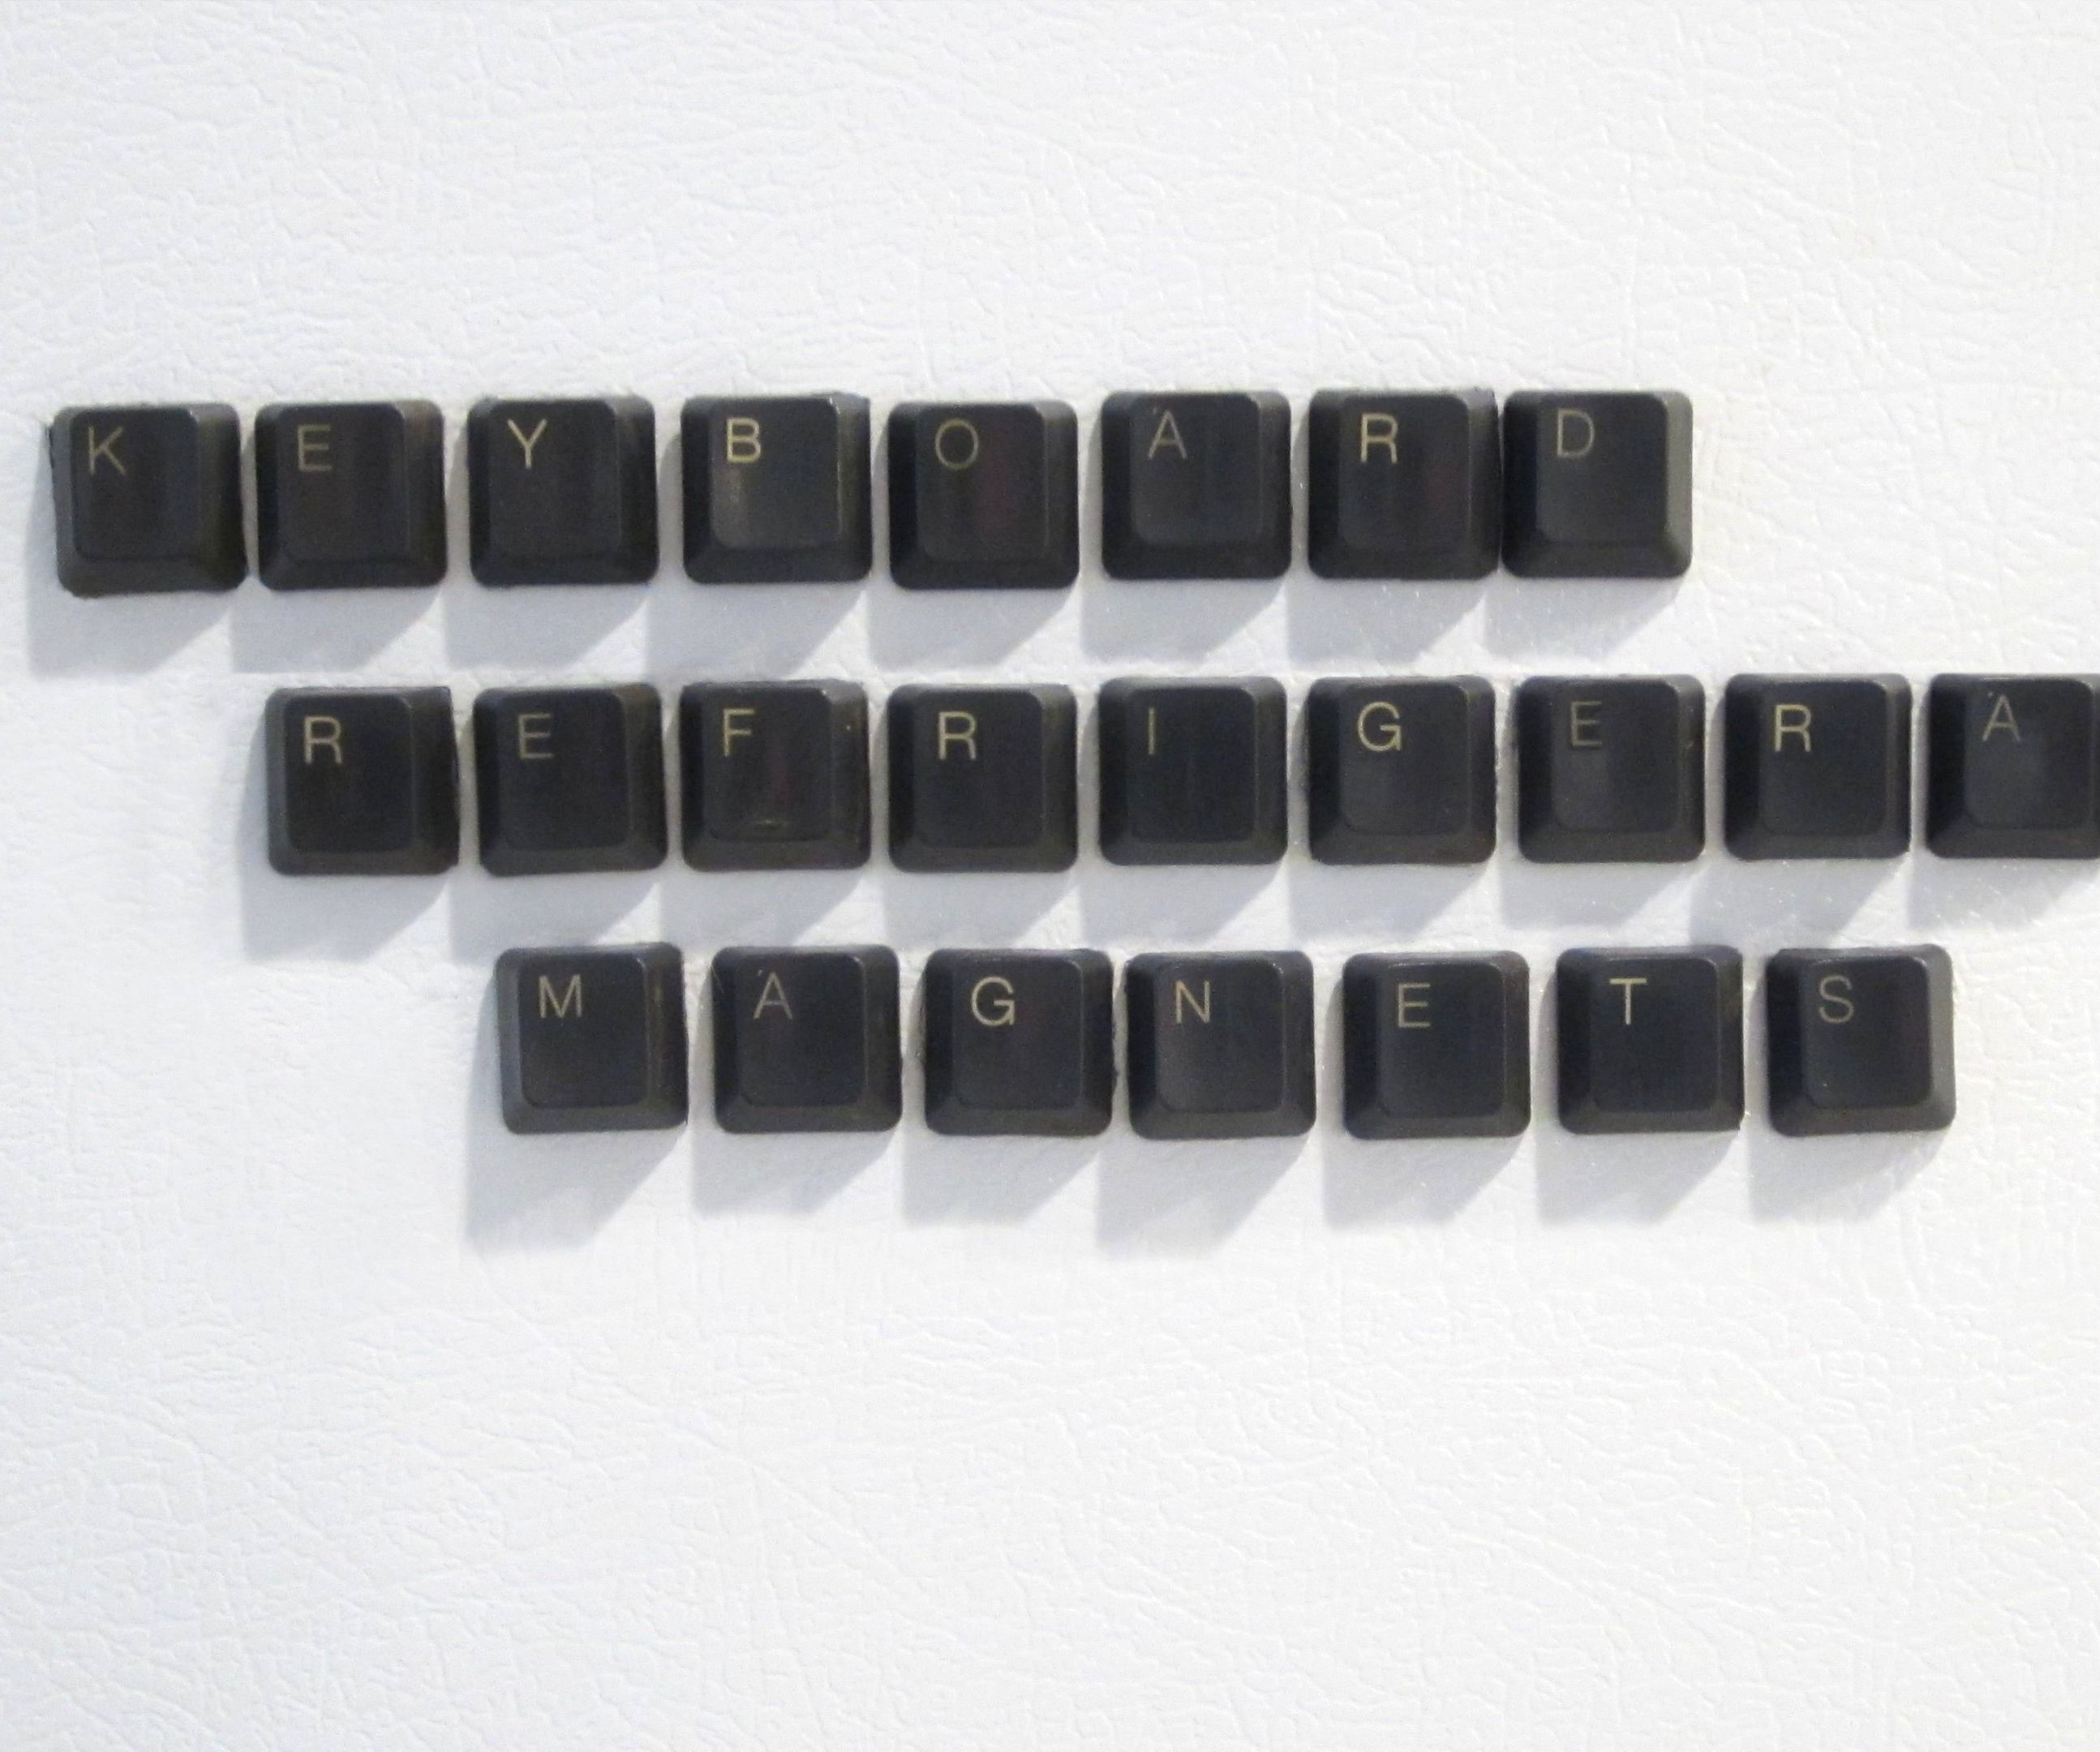 Keyboard Refrigerator Magnets